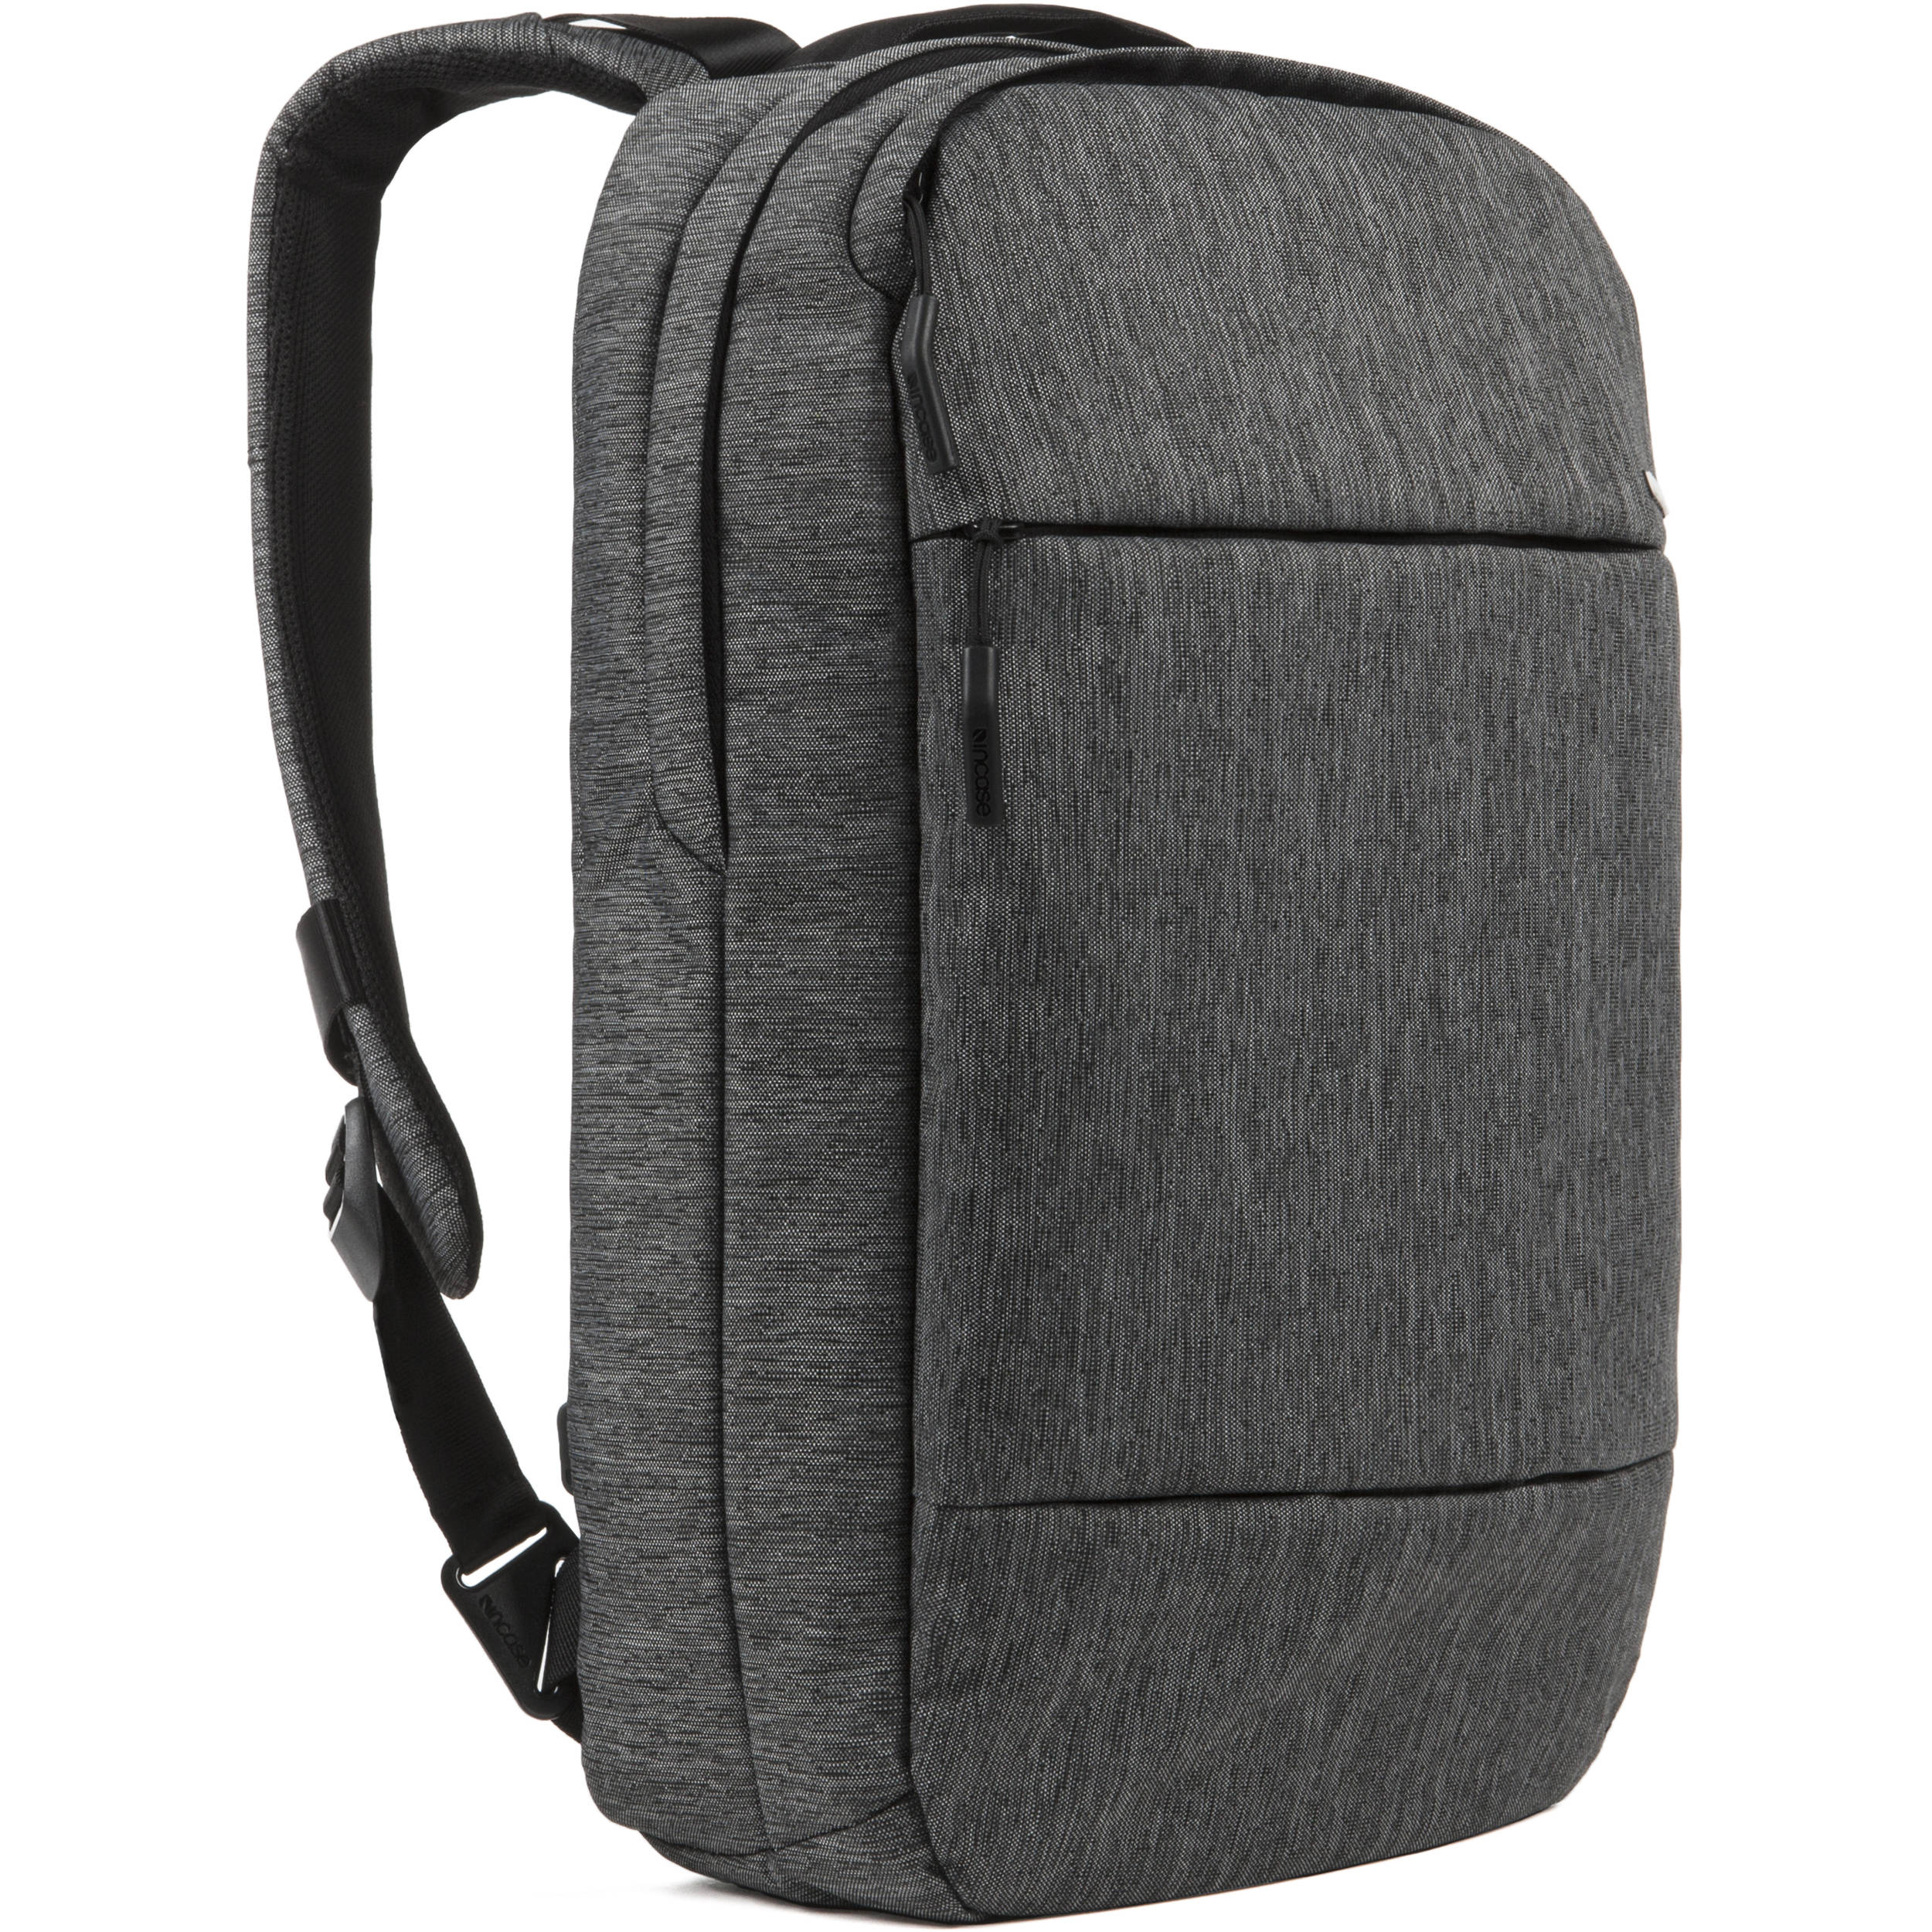 Backpack Product Design